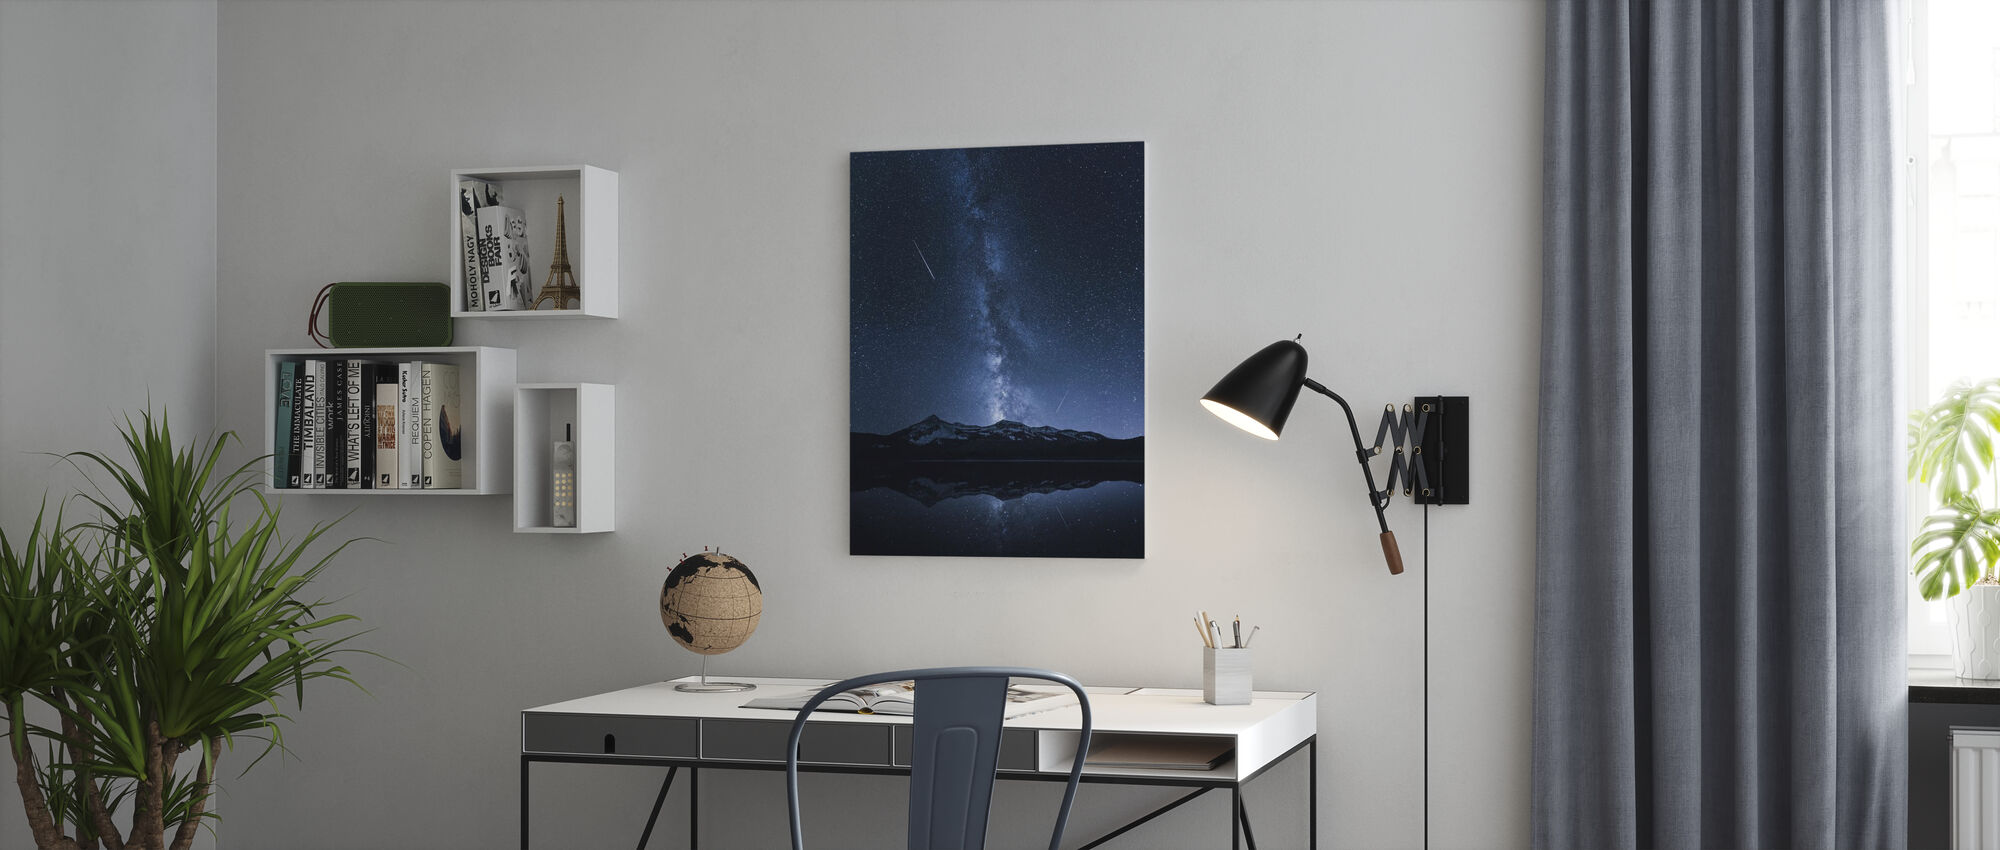 Galaxies Reflection - Canvas print - Office